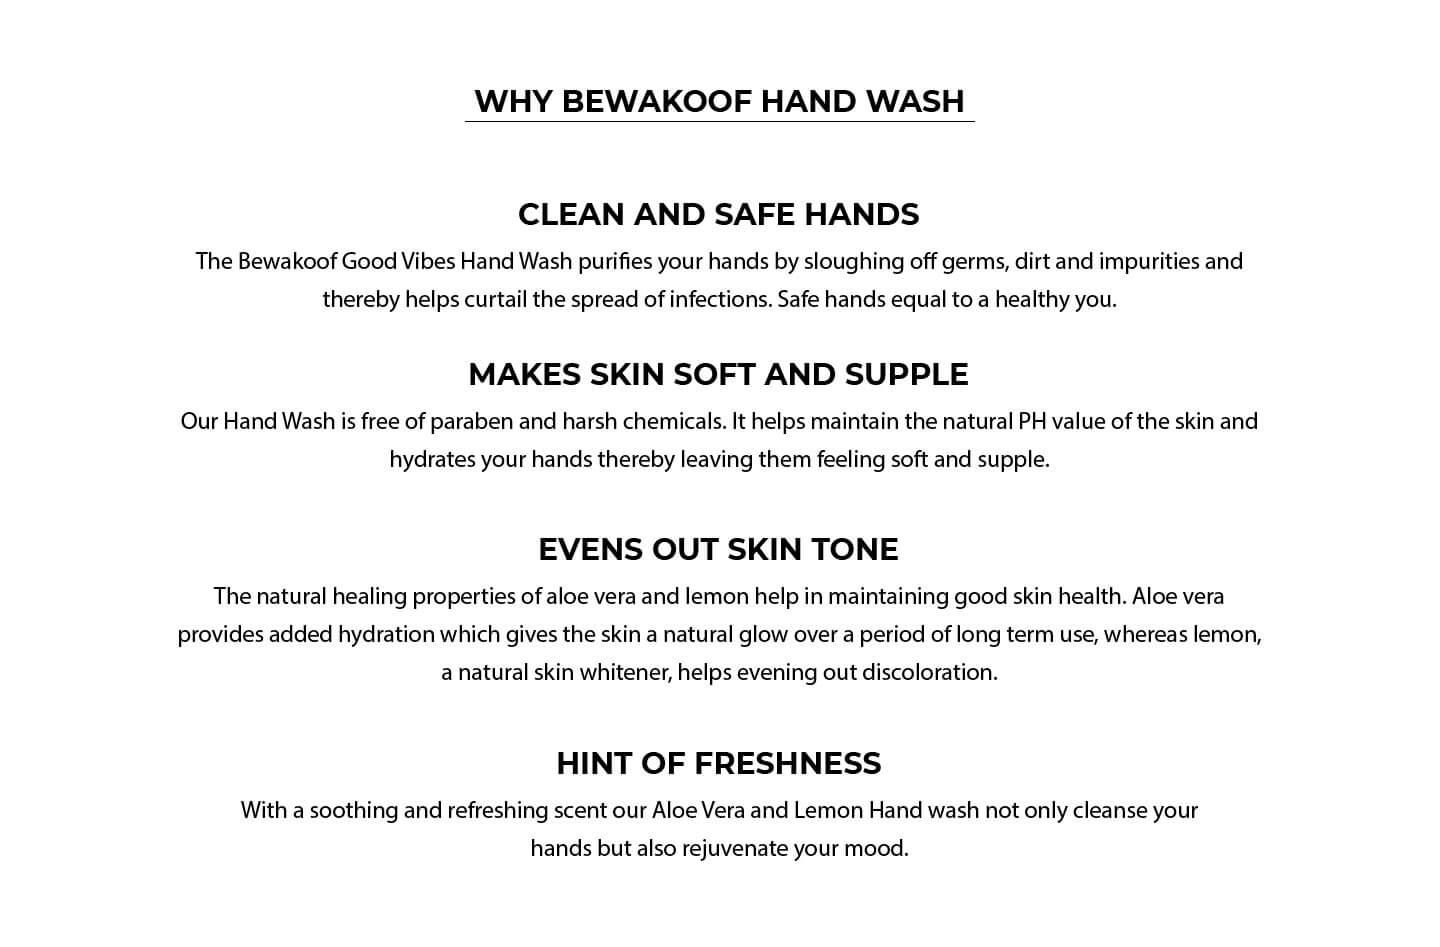 Good Vibes Hand Wash - Aloe Vera (300 ml) Pack Of 2 Description Image Website 1@Bewakoof.com